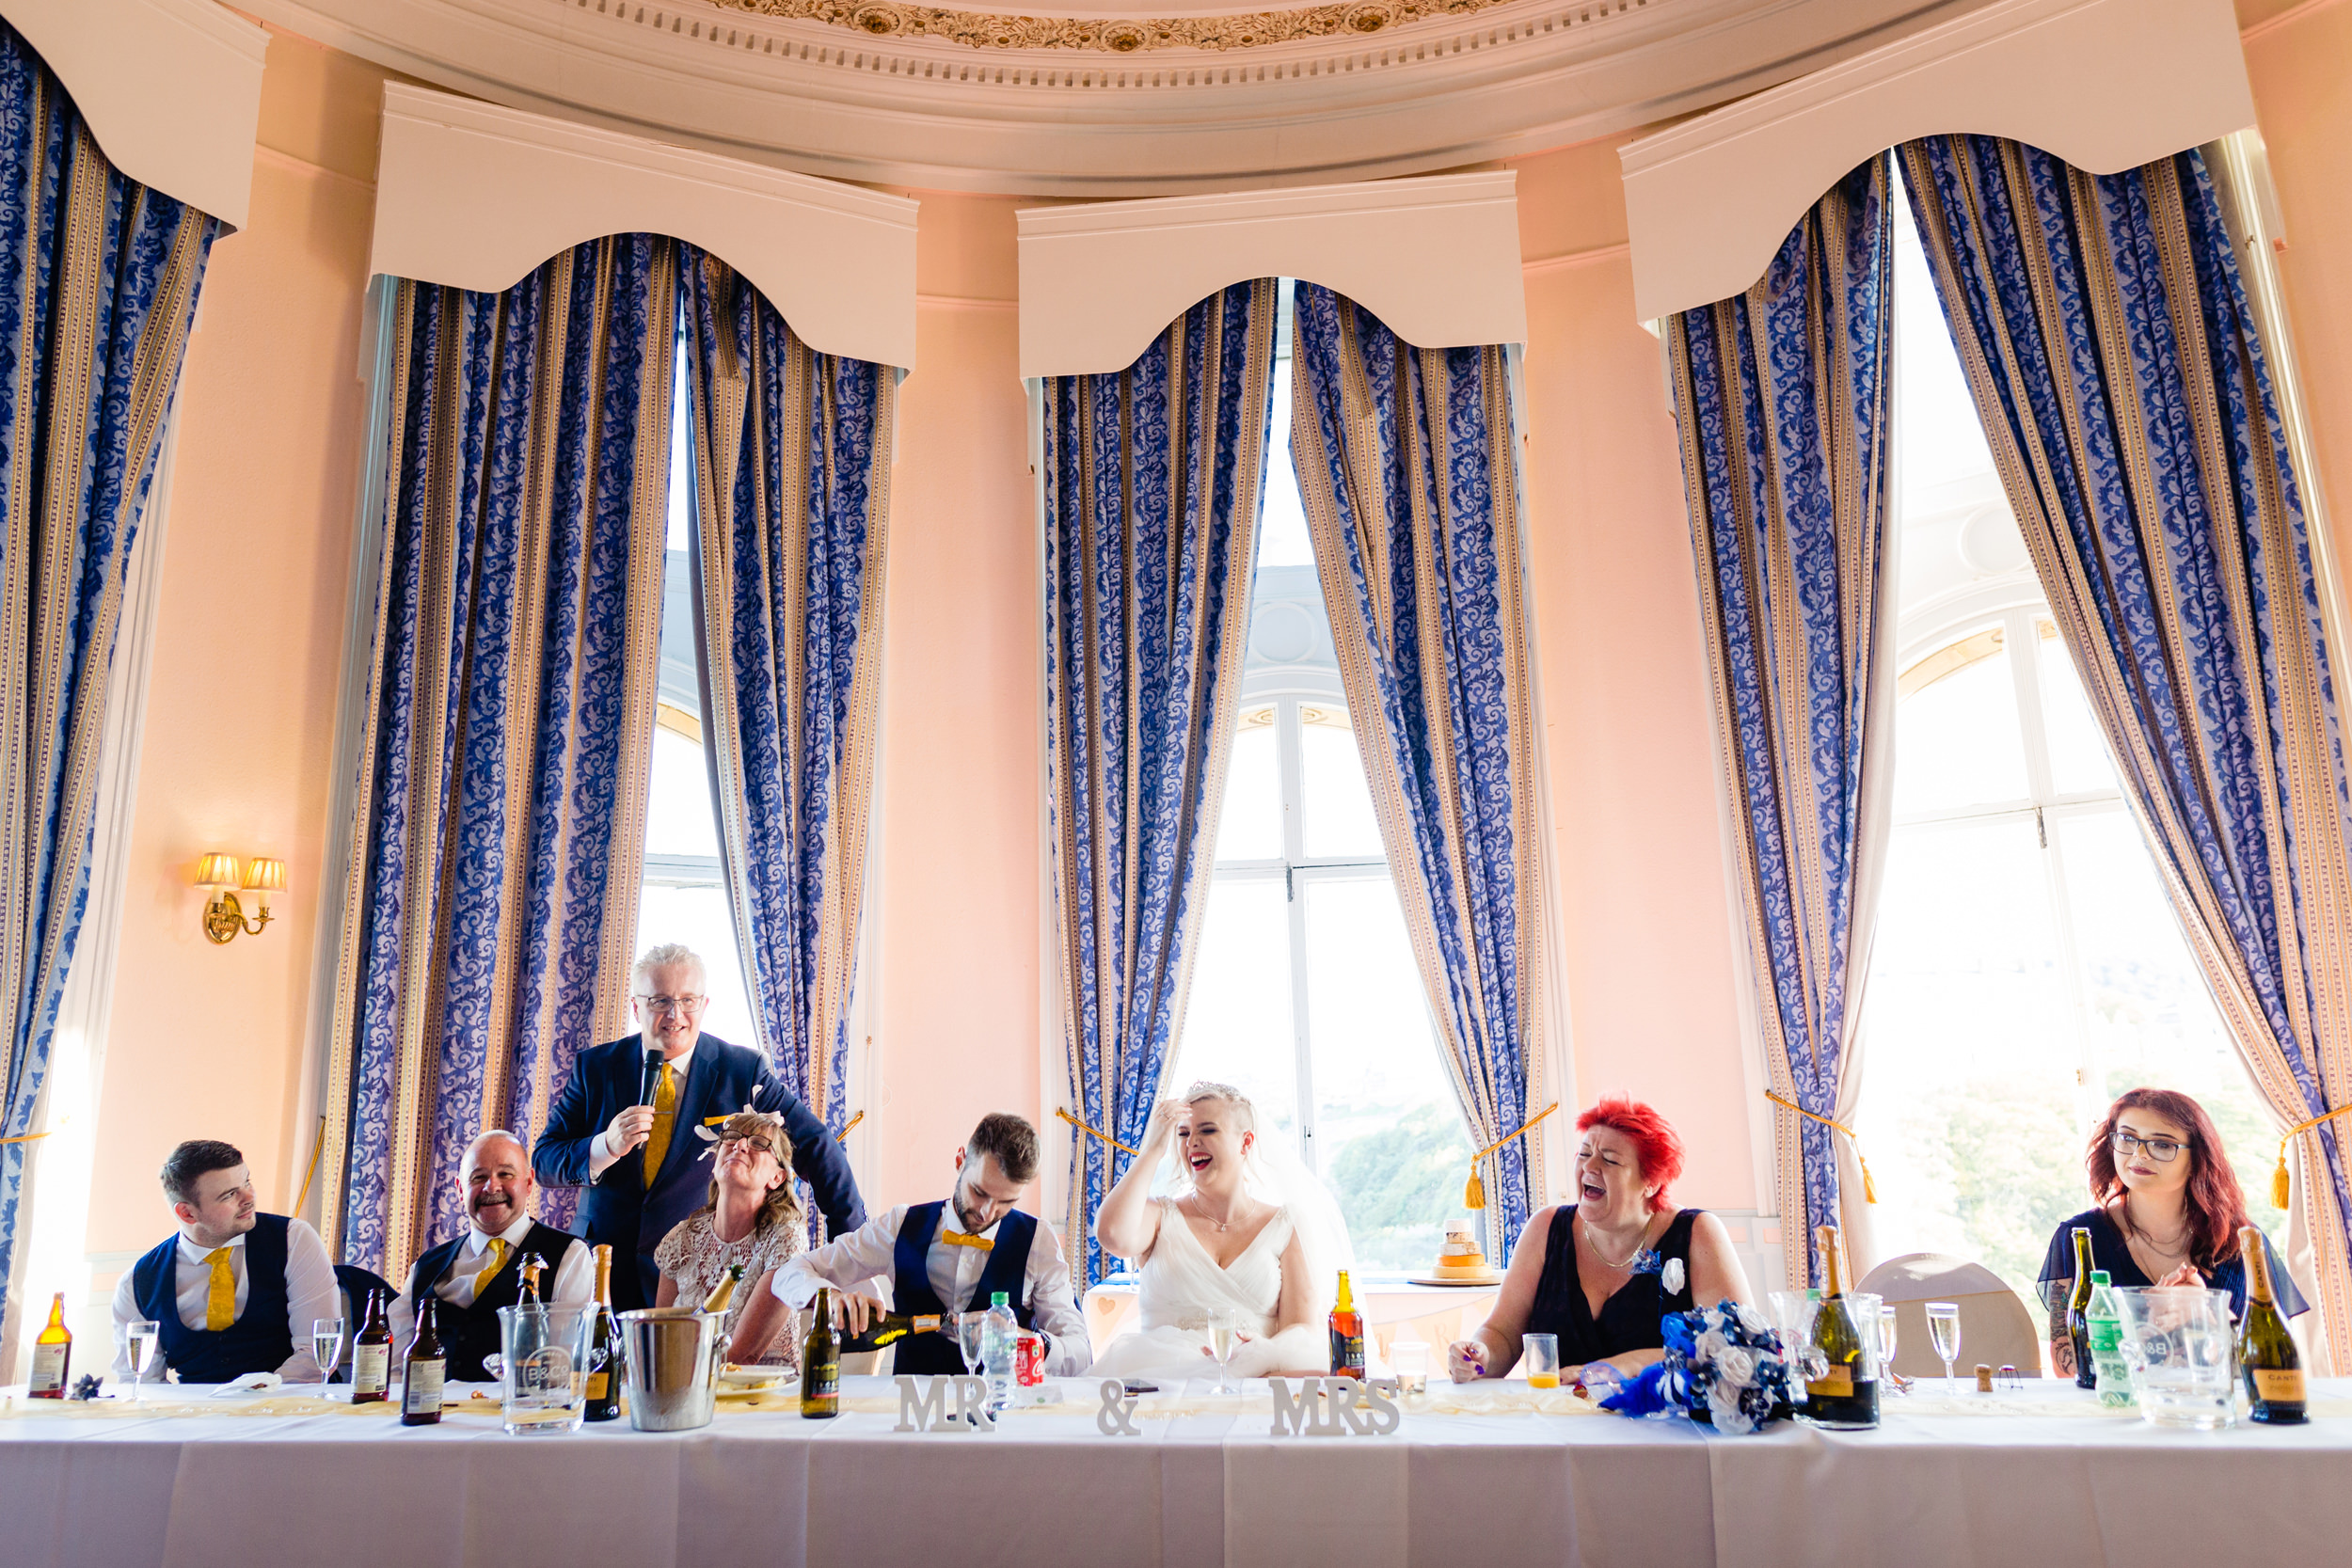 top table during speeches. grand hotel scarborough wedding photography by emma and rich.